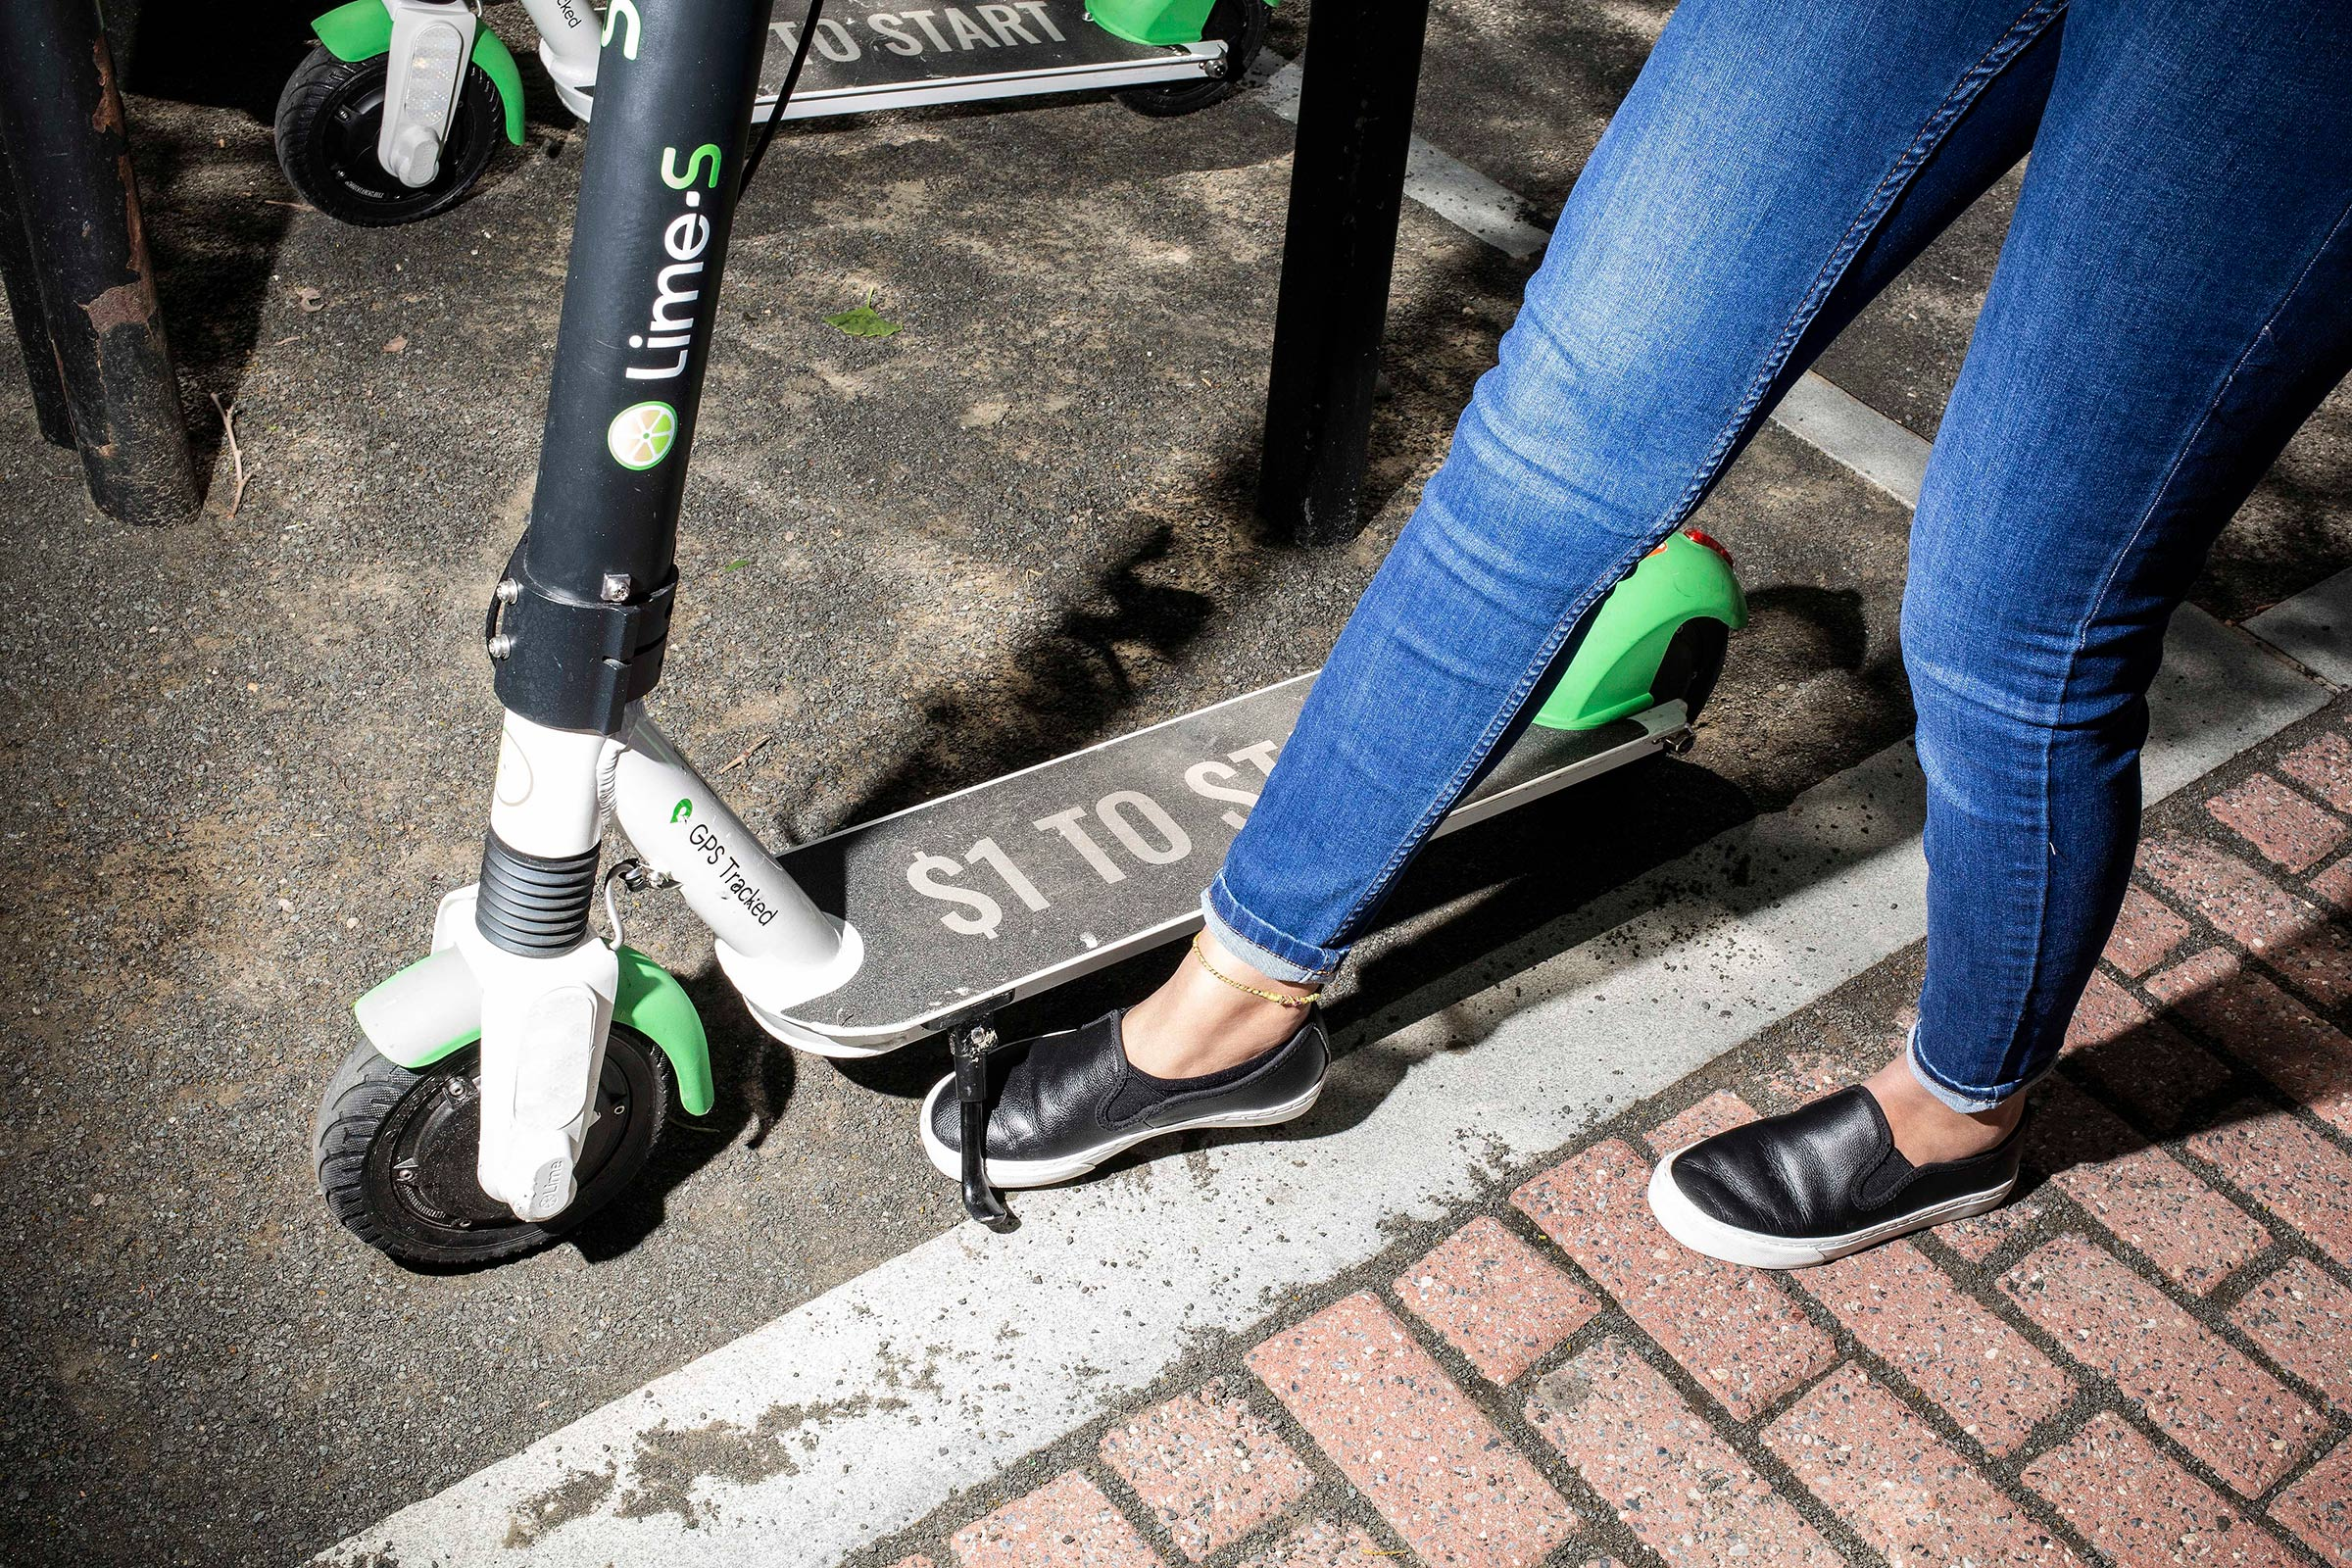 A woman prepares to ride a Lime scooter in Hoboken, N.J. on May 24, 2019.